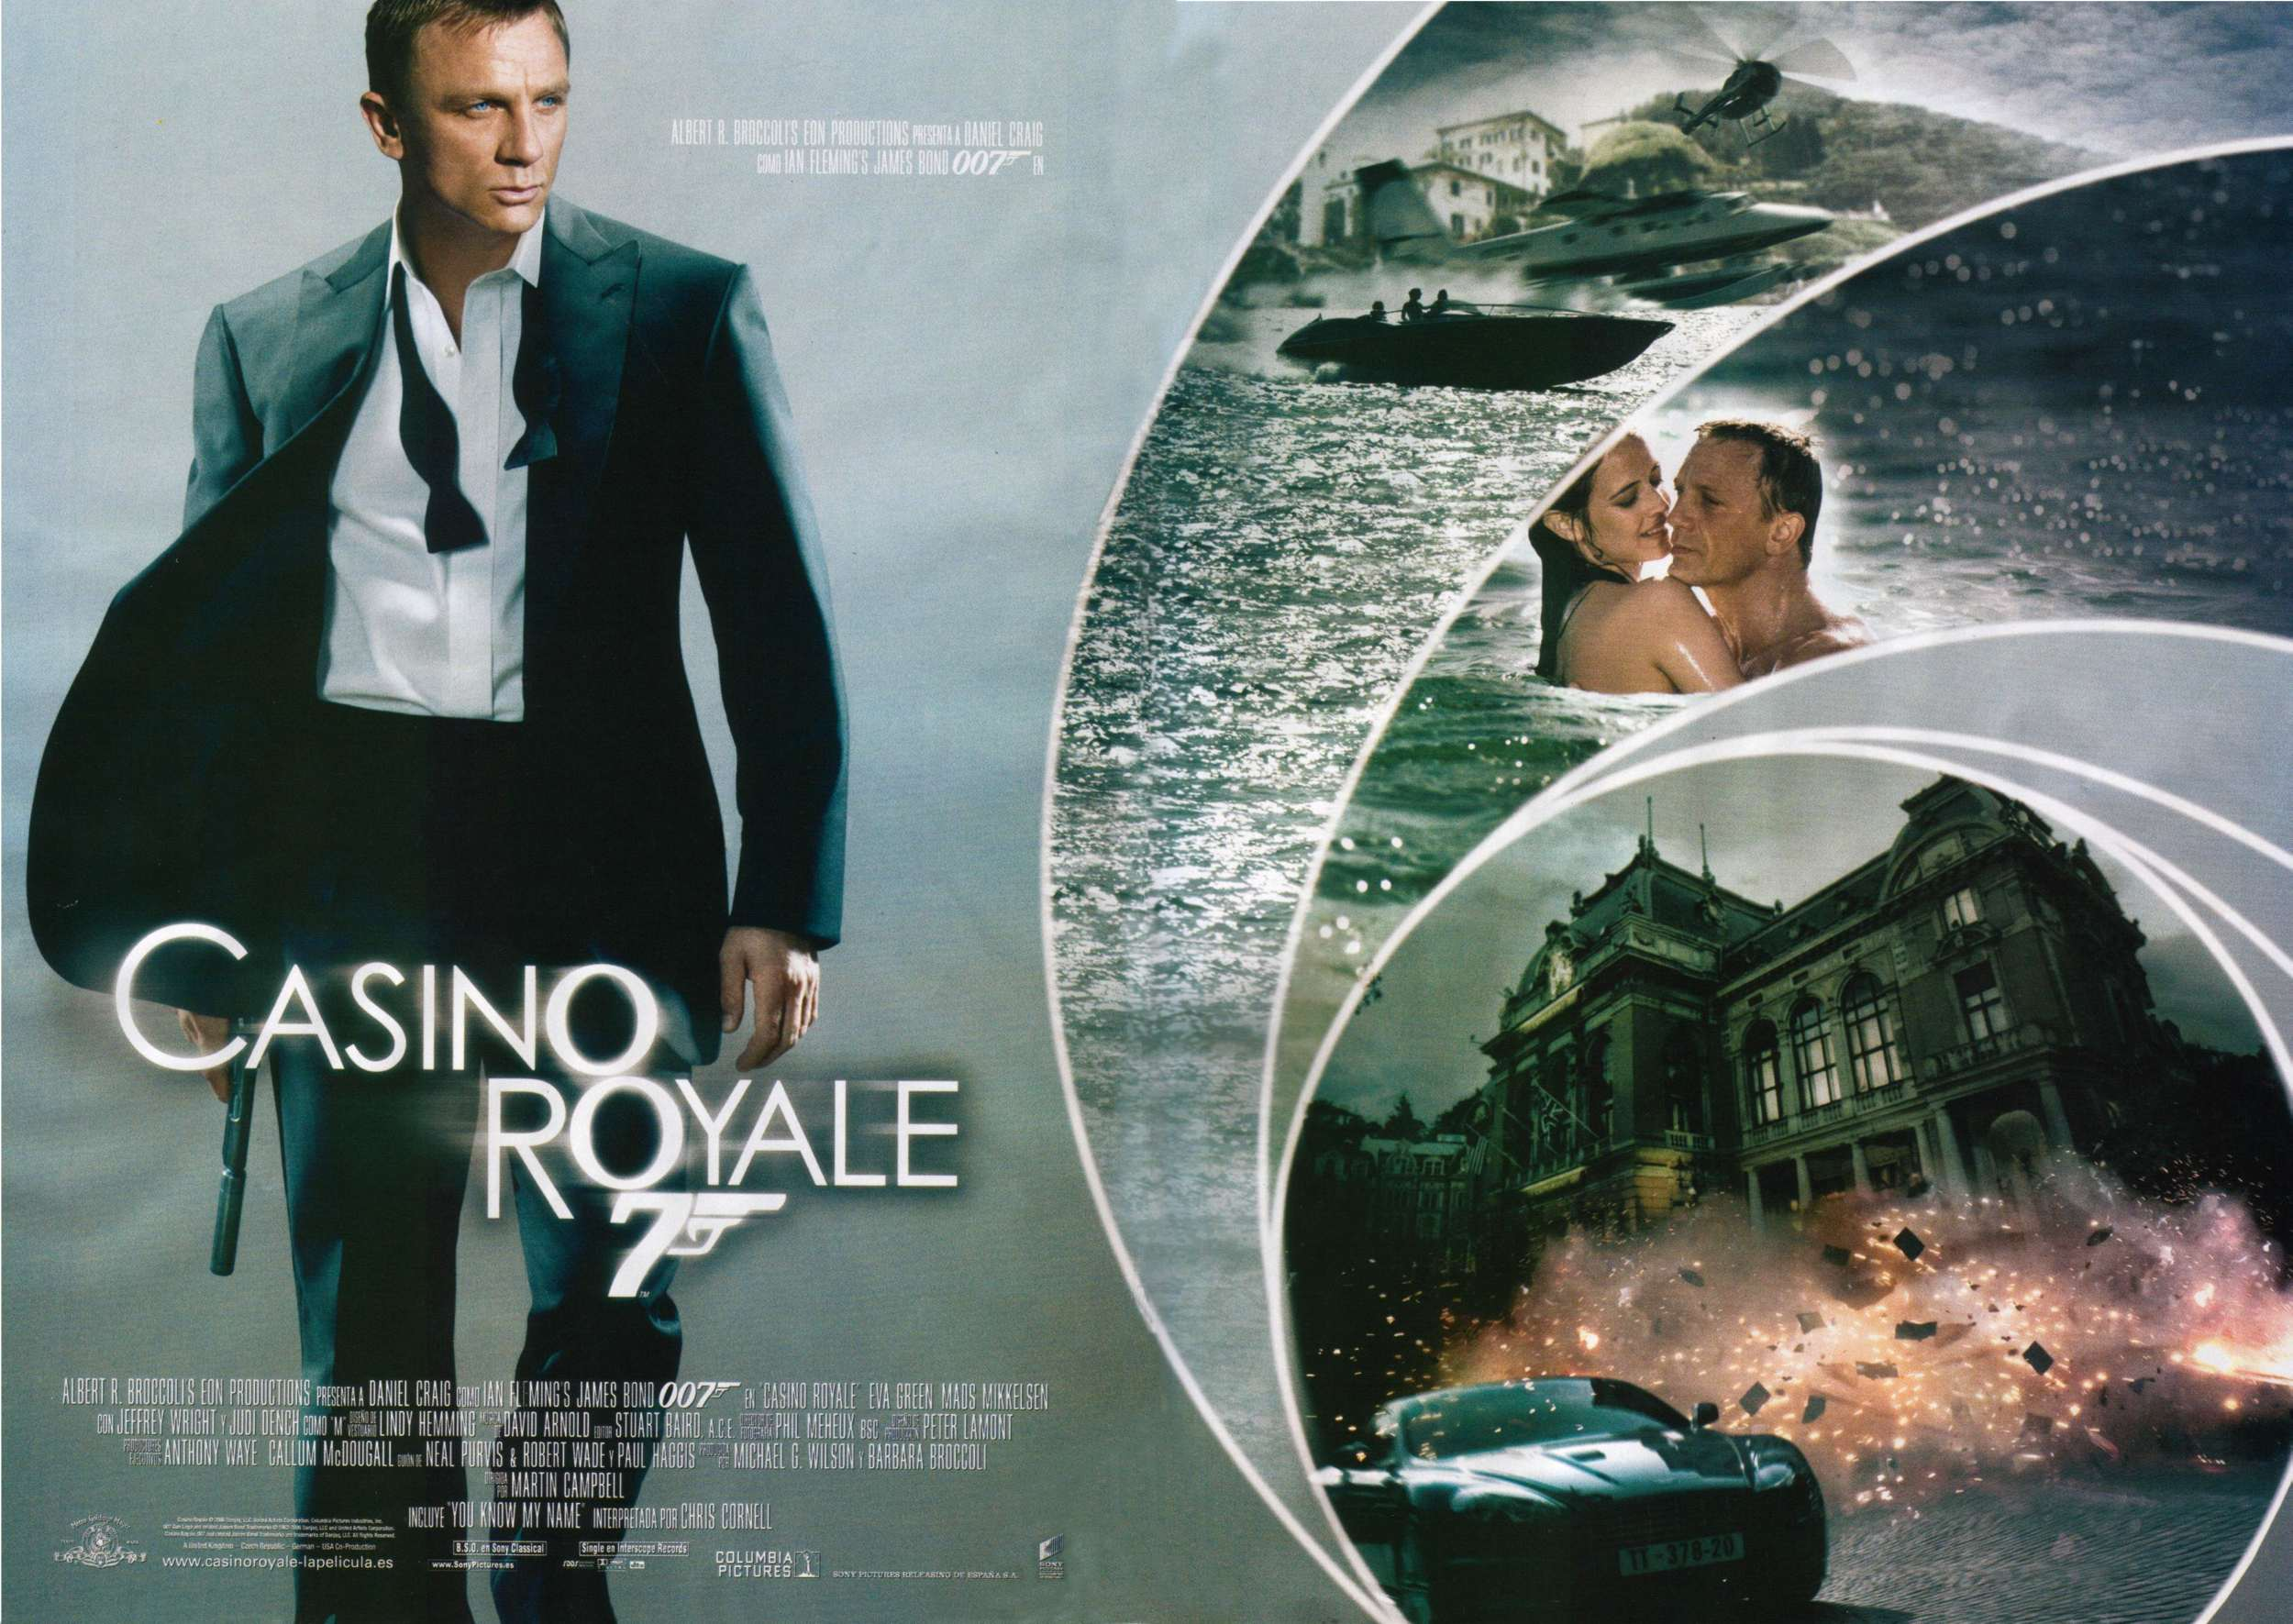 007 casino royale full movie home roulette rules